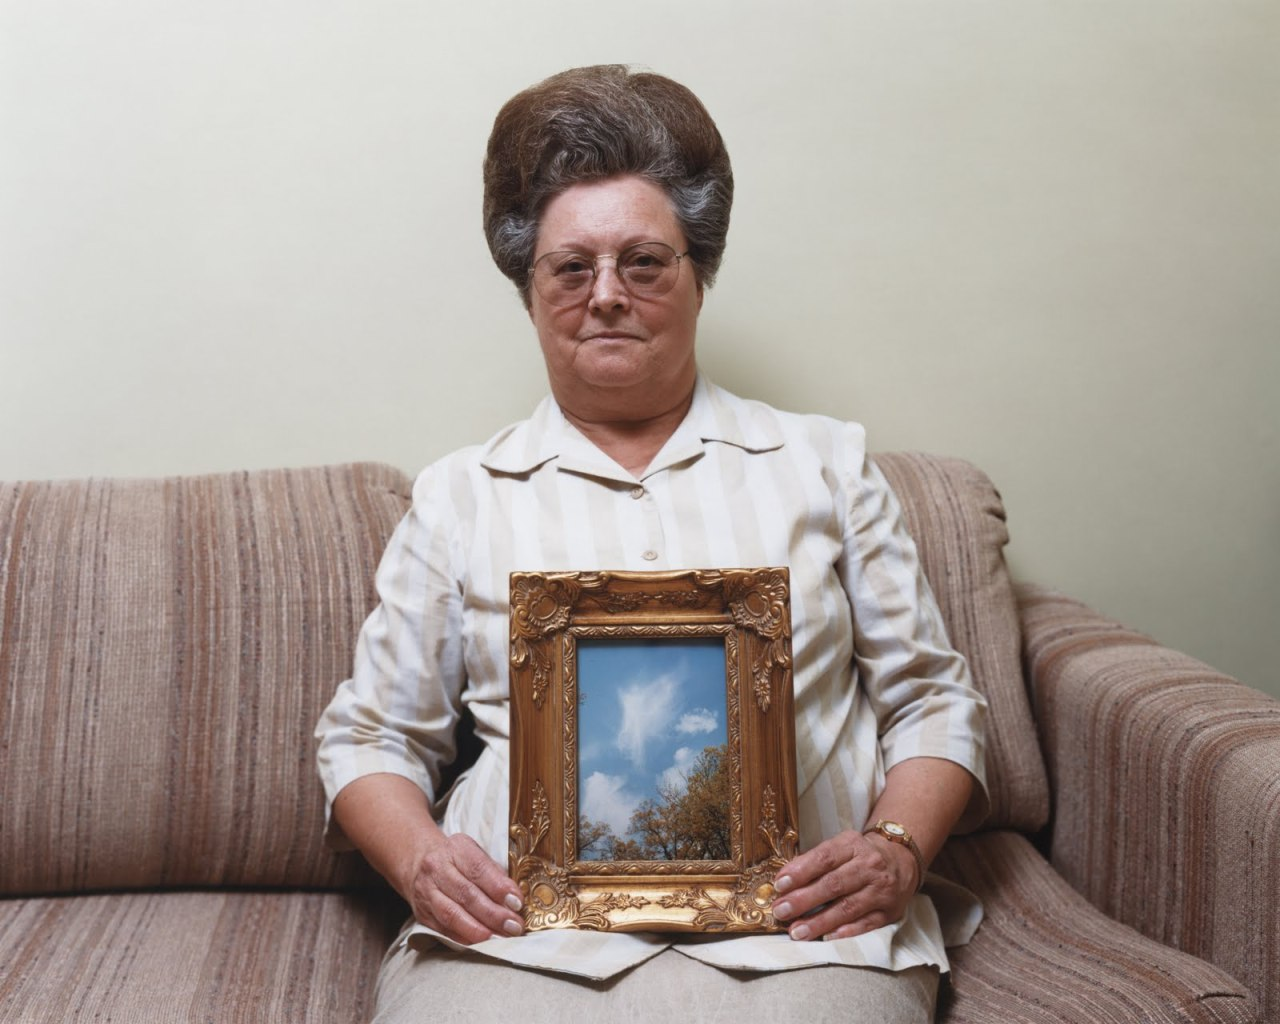 Alec Soth, Bonnie (with a photograph of an angel), Port Gibson, Mississippi, 2000, chromogenic print, 16 x 20 inches, Collection of Allen G. Thomas Jr. An exhibition at the North Carolina Museum of Art highlights the work of Alec Soth — specifically from two of his bodies of work, Sleeping by the Mississippi and NIAGARA. For more information about the exhibit, follow on this way. See Alec's most recent book, Looking for Love, here on LightBox.